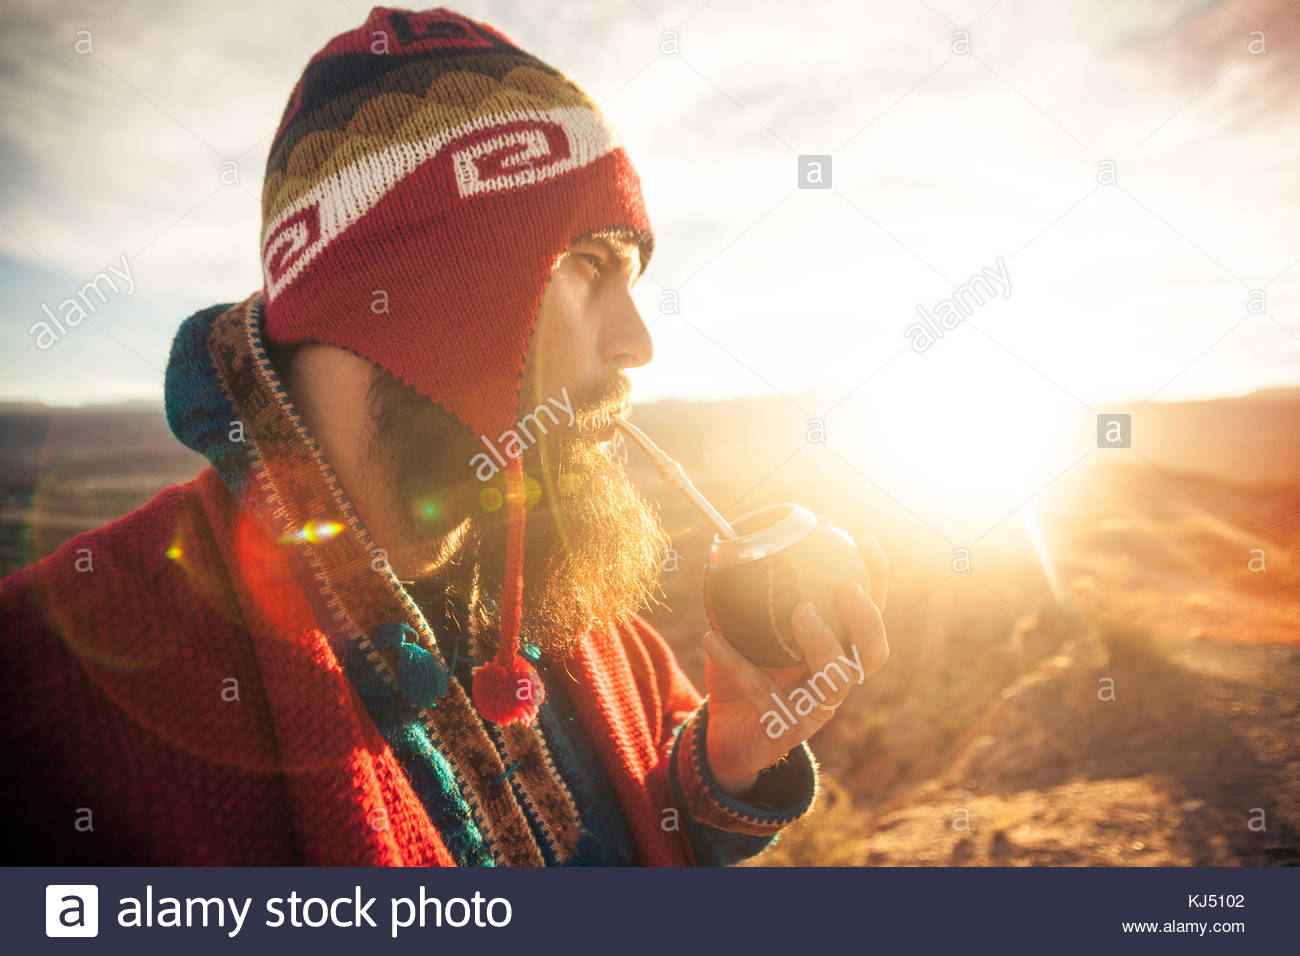 Man drinking matcha at sunset - Stock Image